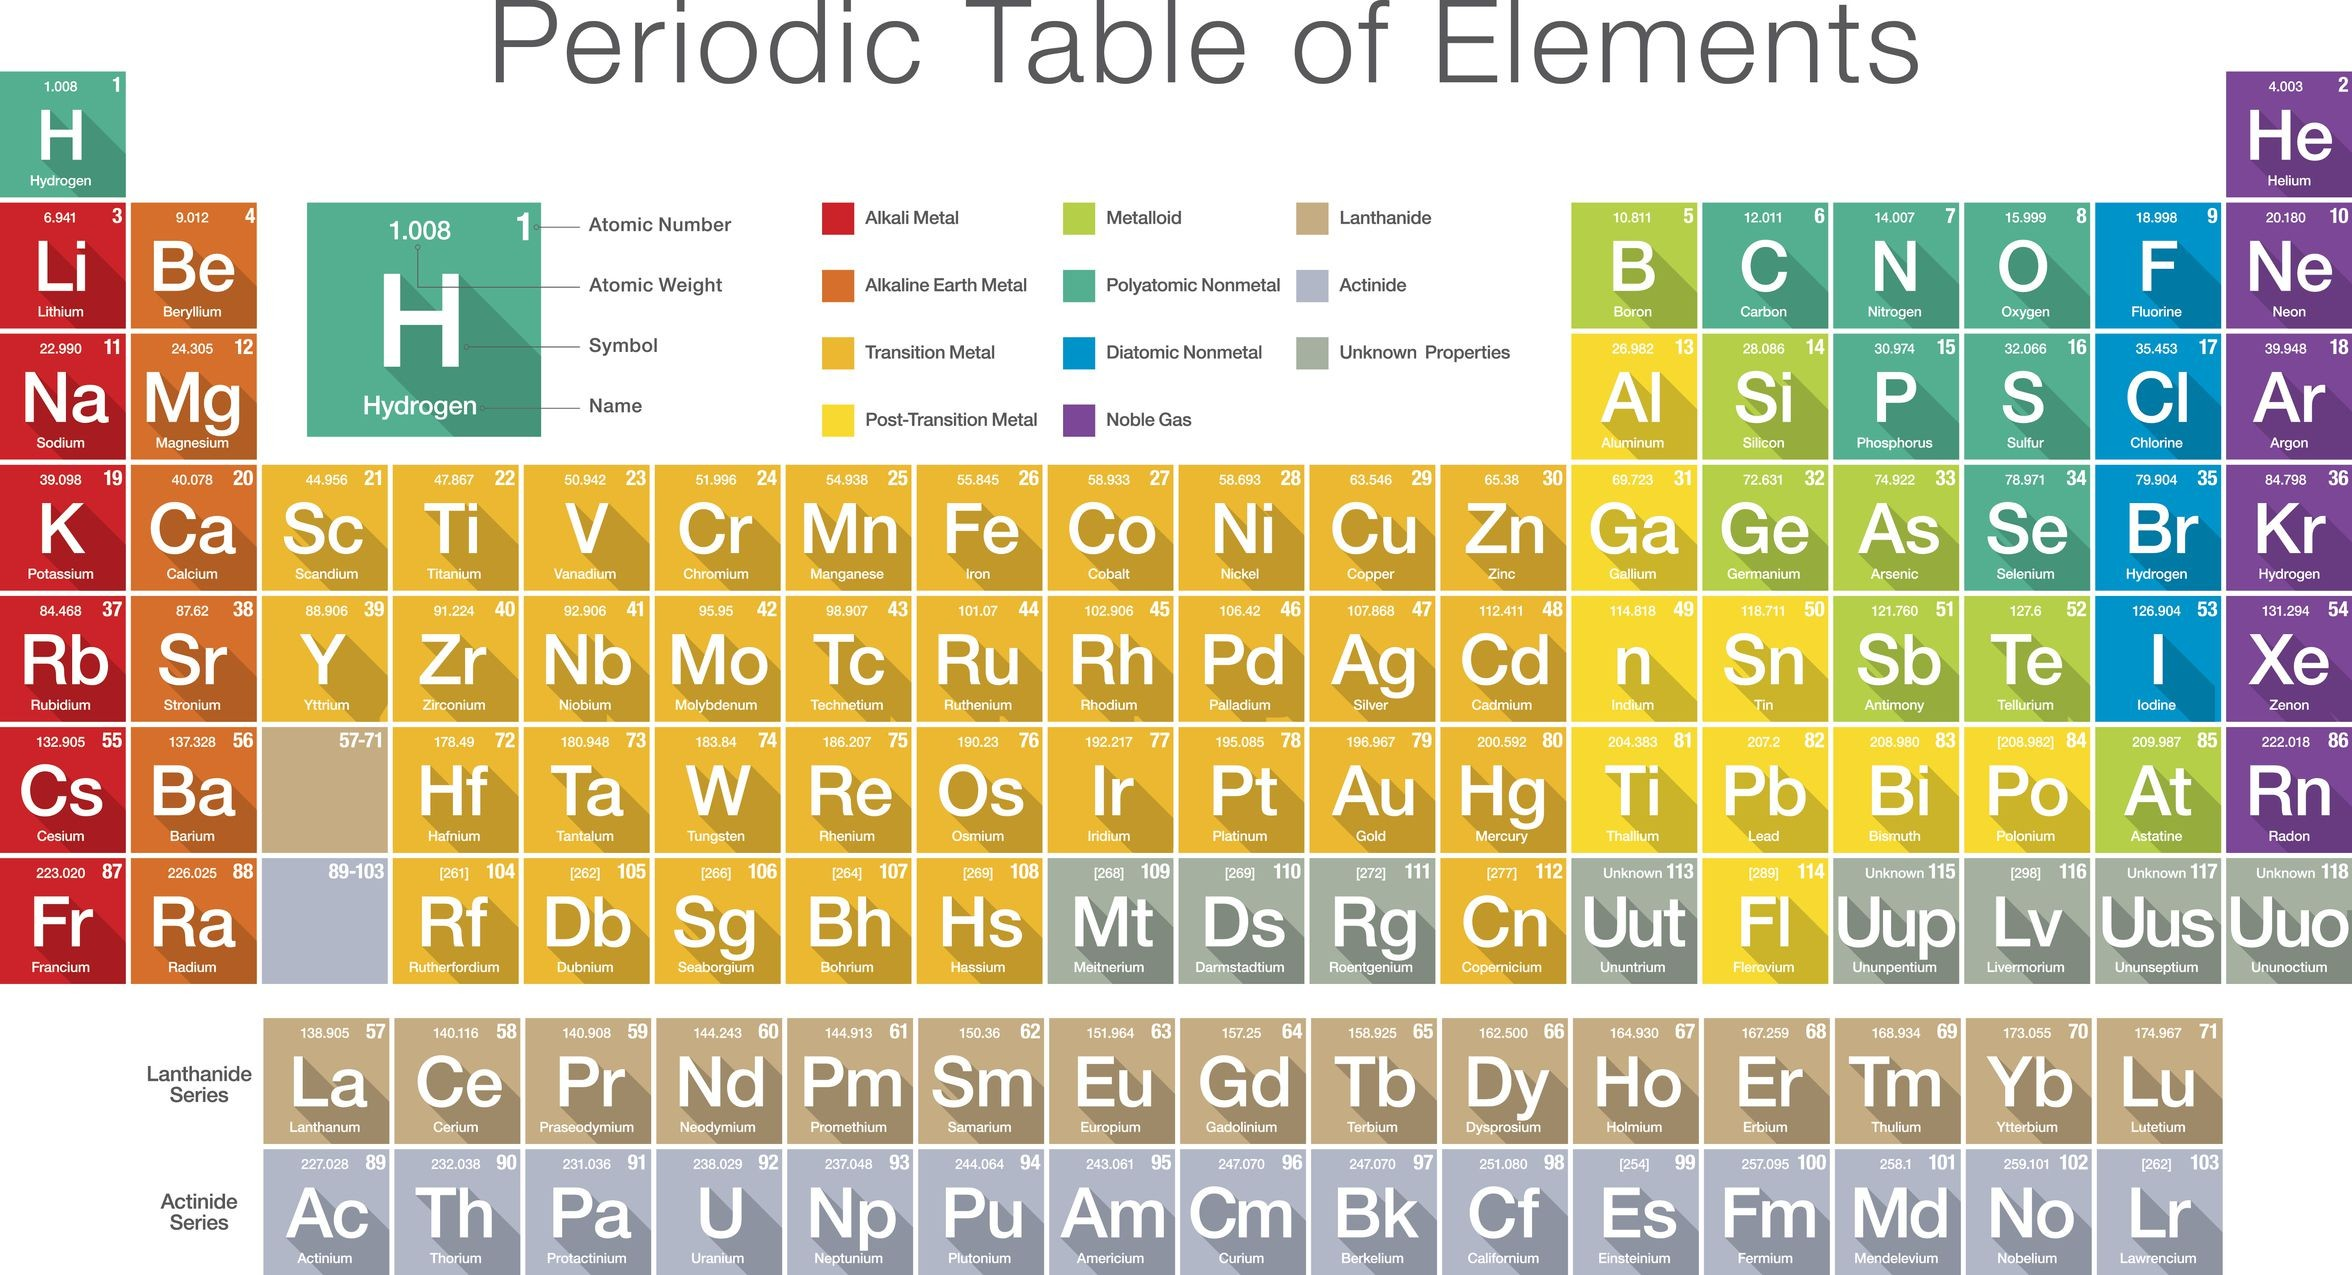 Periodic table of elements with names and symbols dynamic periodic here only periodic table has been provided with symbols and atomic number urtaz Images